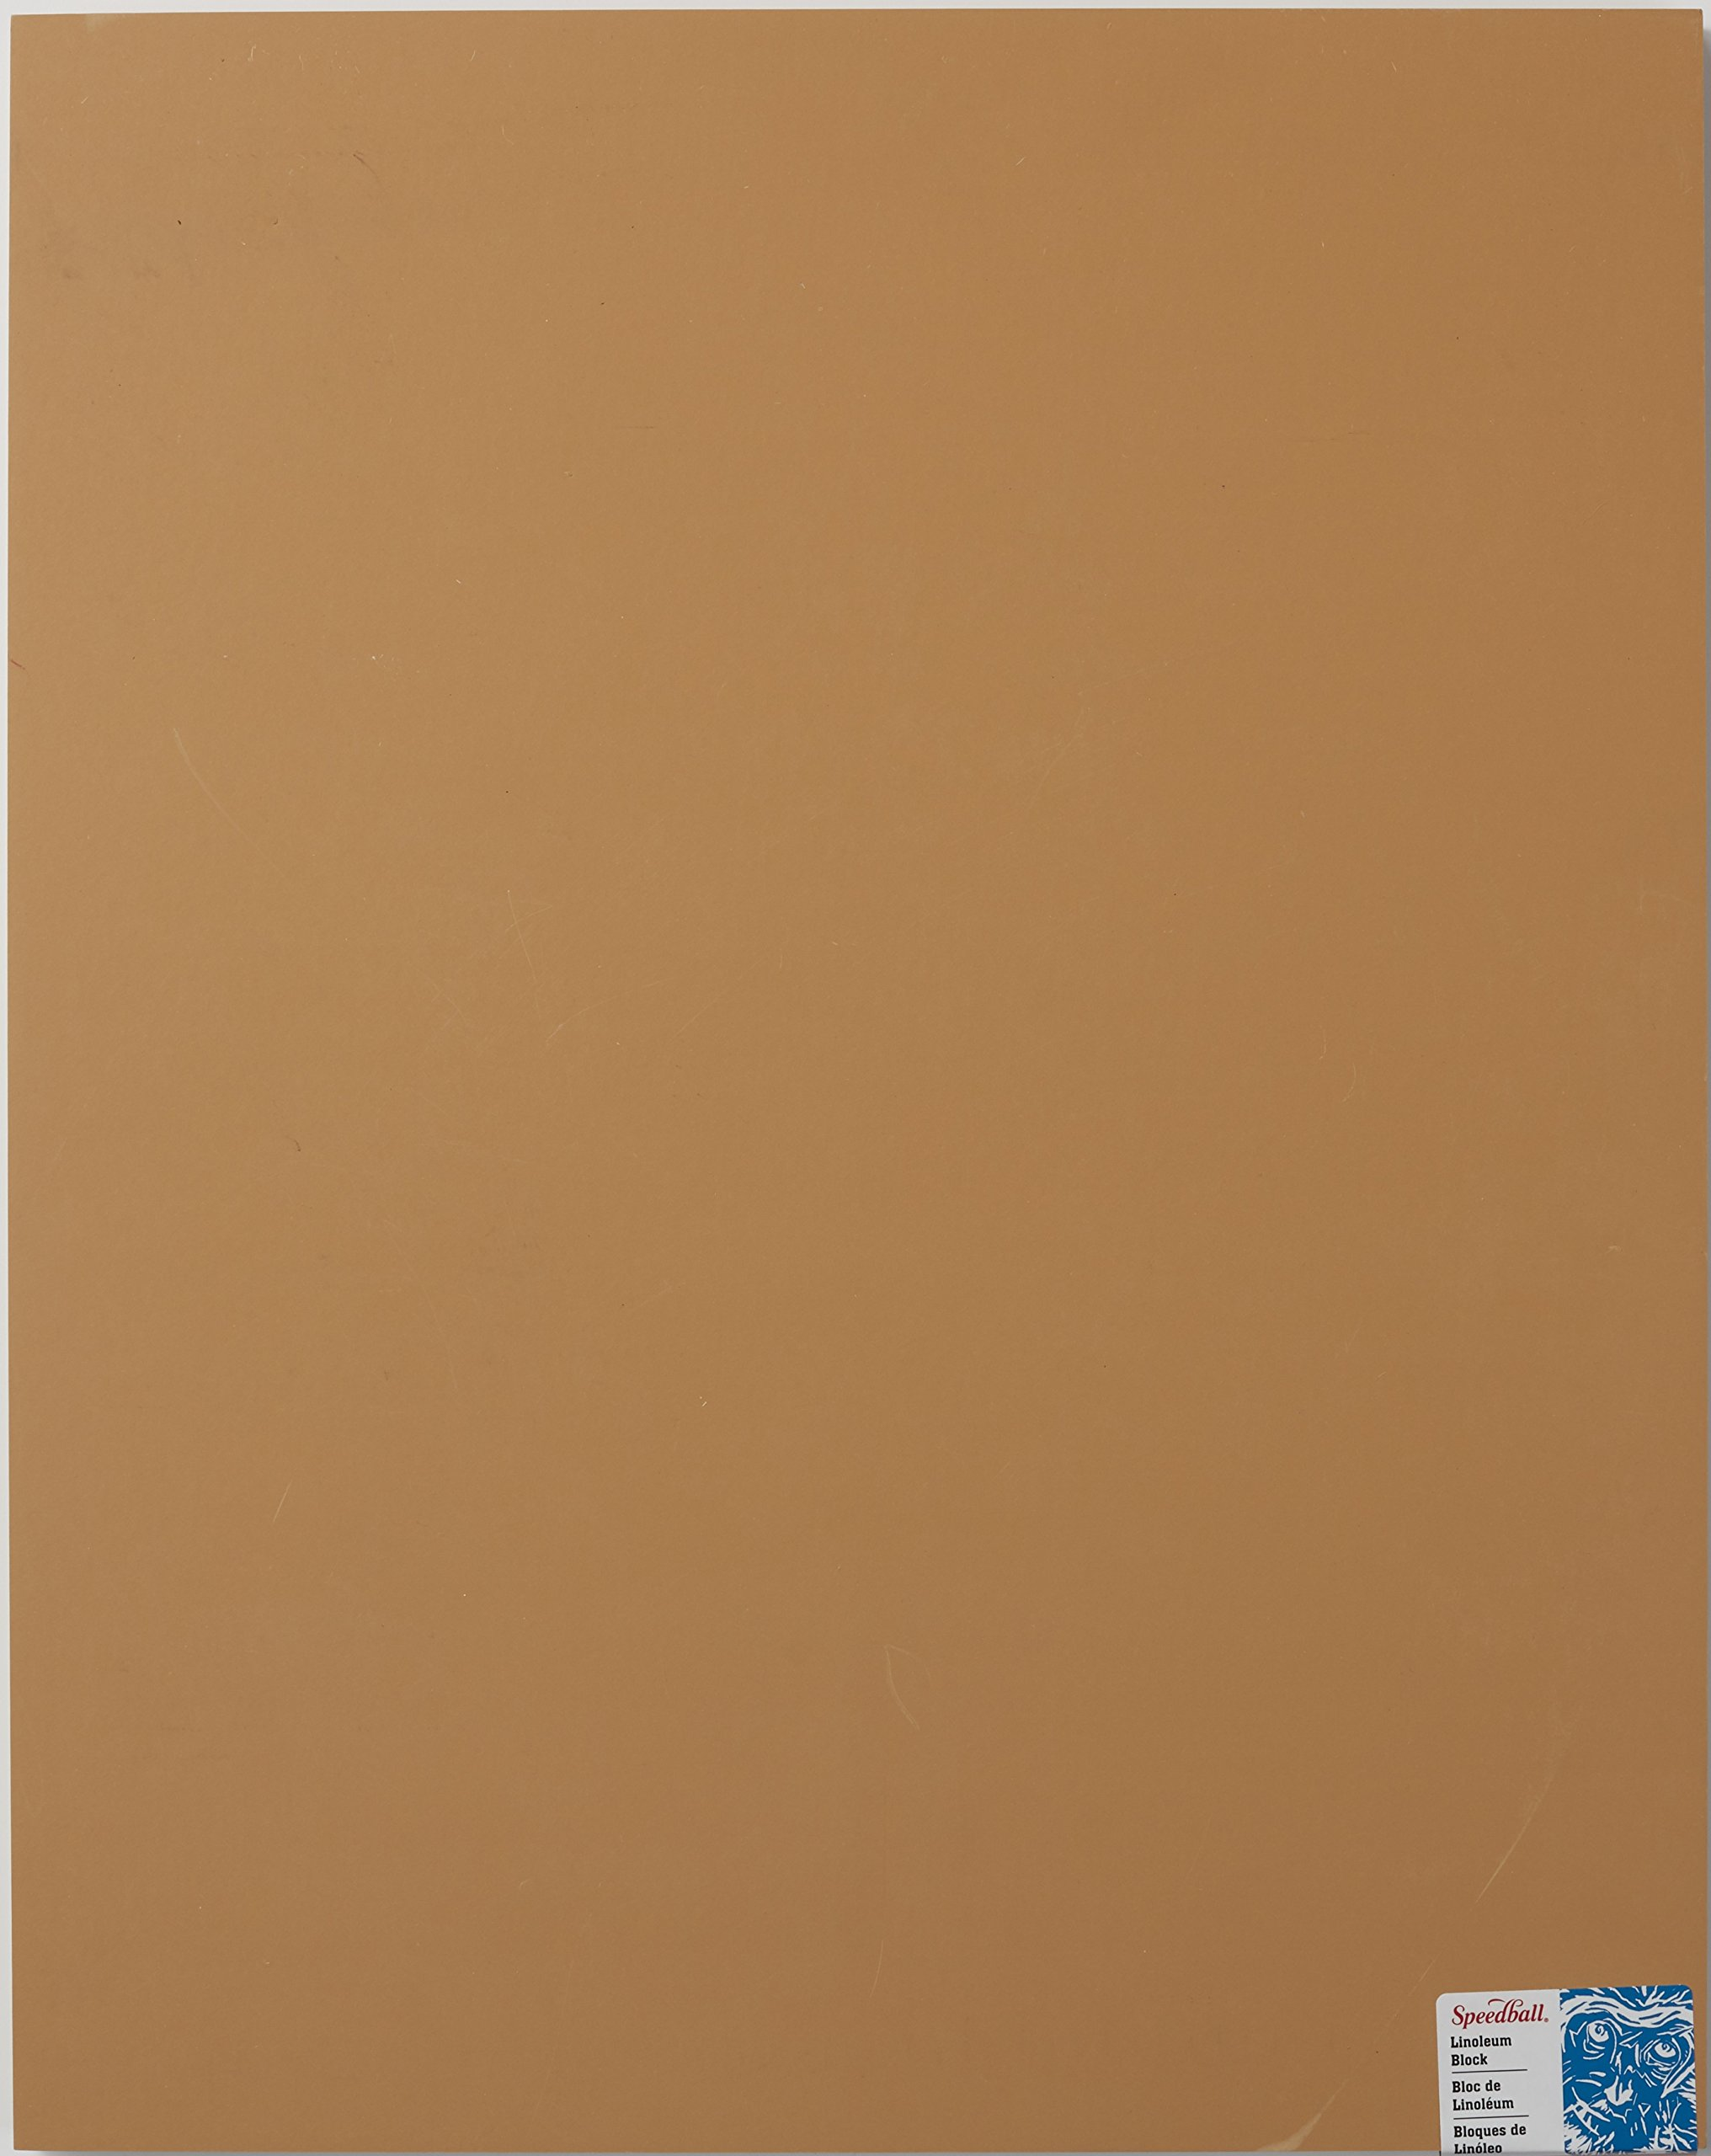 Speedball 4318 Premium Mounted Linoleum Block - Fine, Flat Surface for Easy Carving, Smoky Tan, 19 x 24 Inches by Speedball